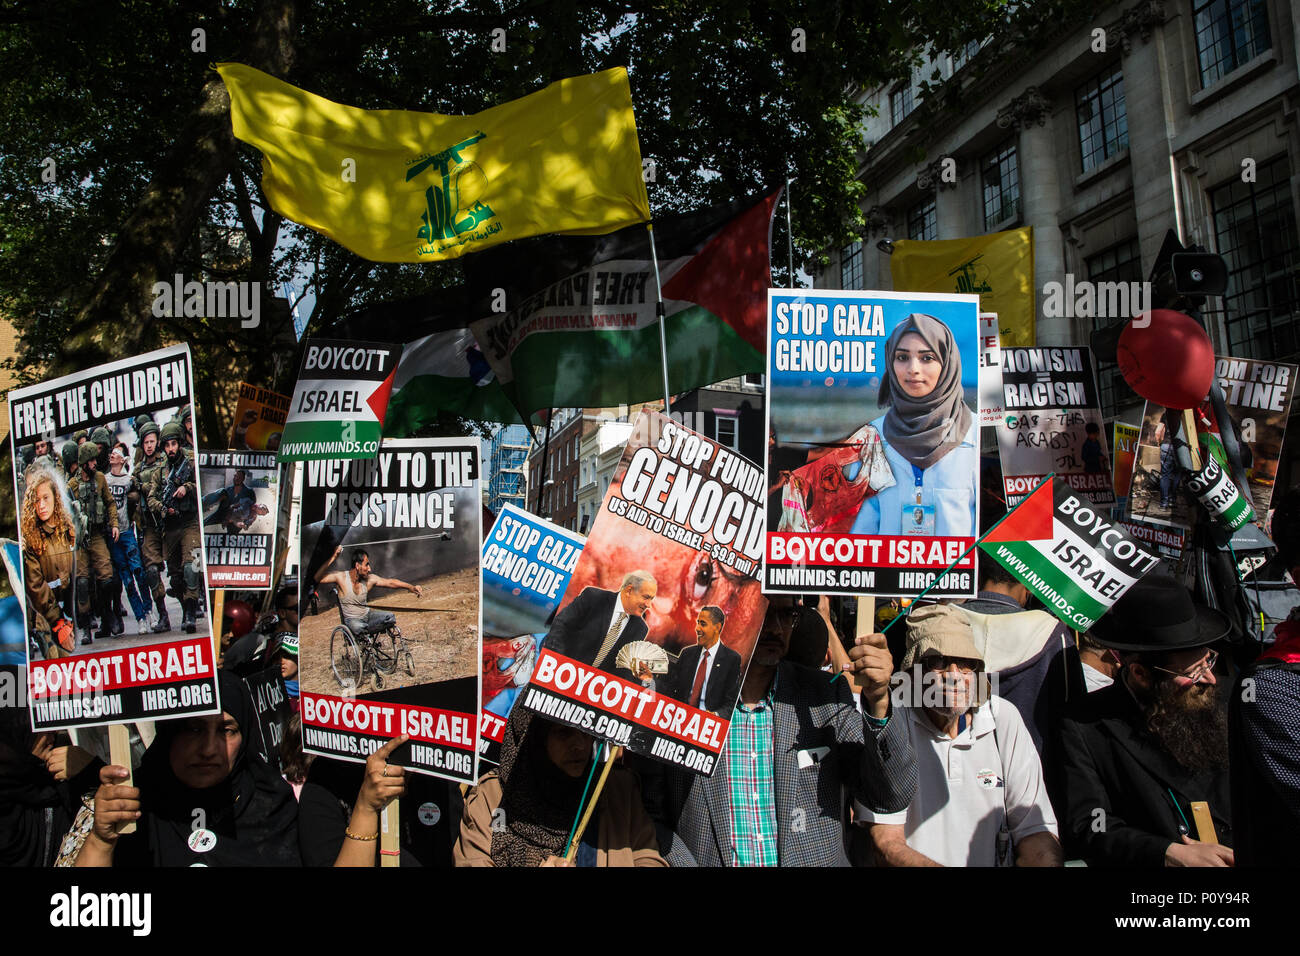 London, UK. 10th June, 2018. Hundreds of people wait with placards and Hezbollah flags outside the Saudi embassy to take part in the pro-Palestinian Al Quds Day march through central London organised by the Islamic Human Rights Commission. An international event, it began in Iran in 1979. Quds is the Arabic name for Jerusalem. Credit: Mark Kerrison/Alamy Live News - Stock Image